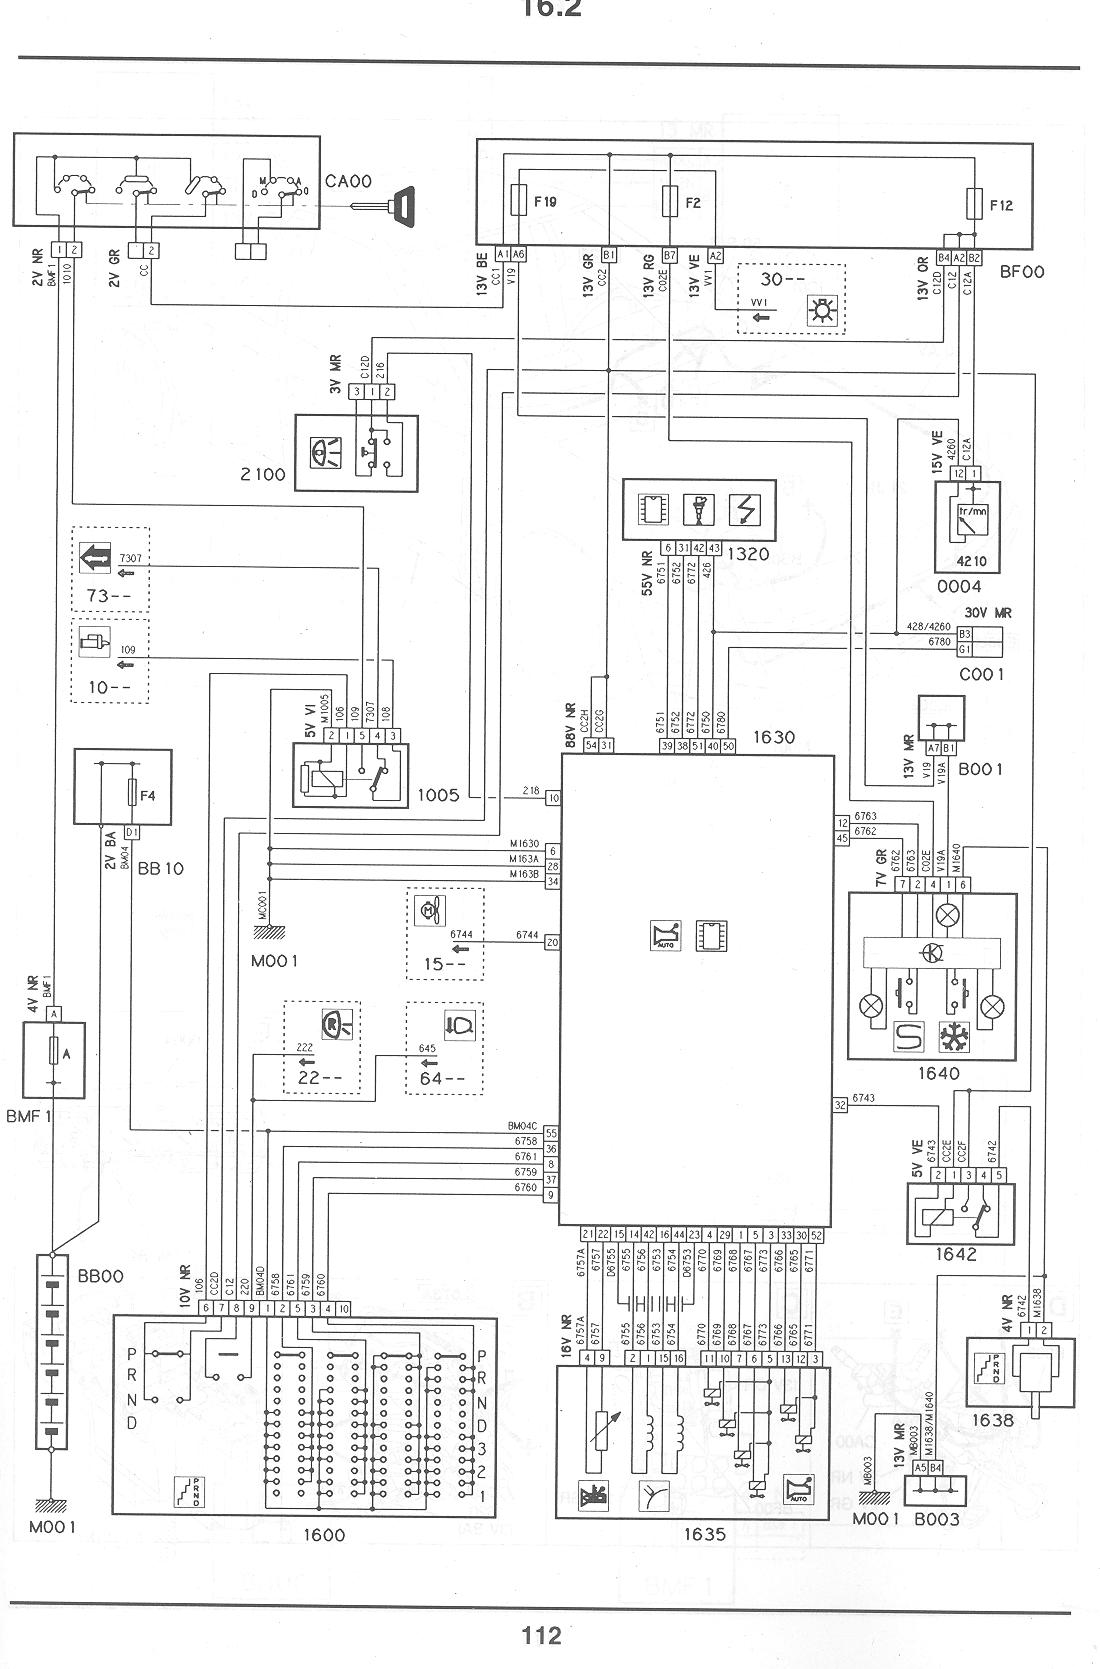 citroen c3 wiring diagram free download imageresizertool com Mercruiser Fuse Box 4hp20mk1cct